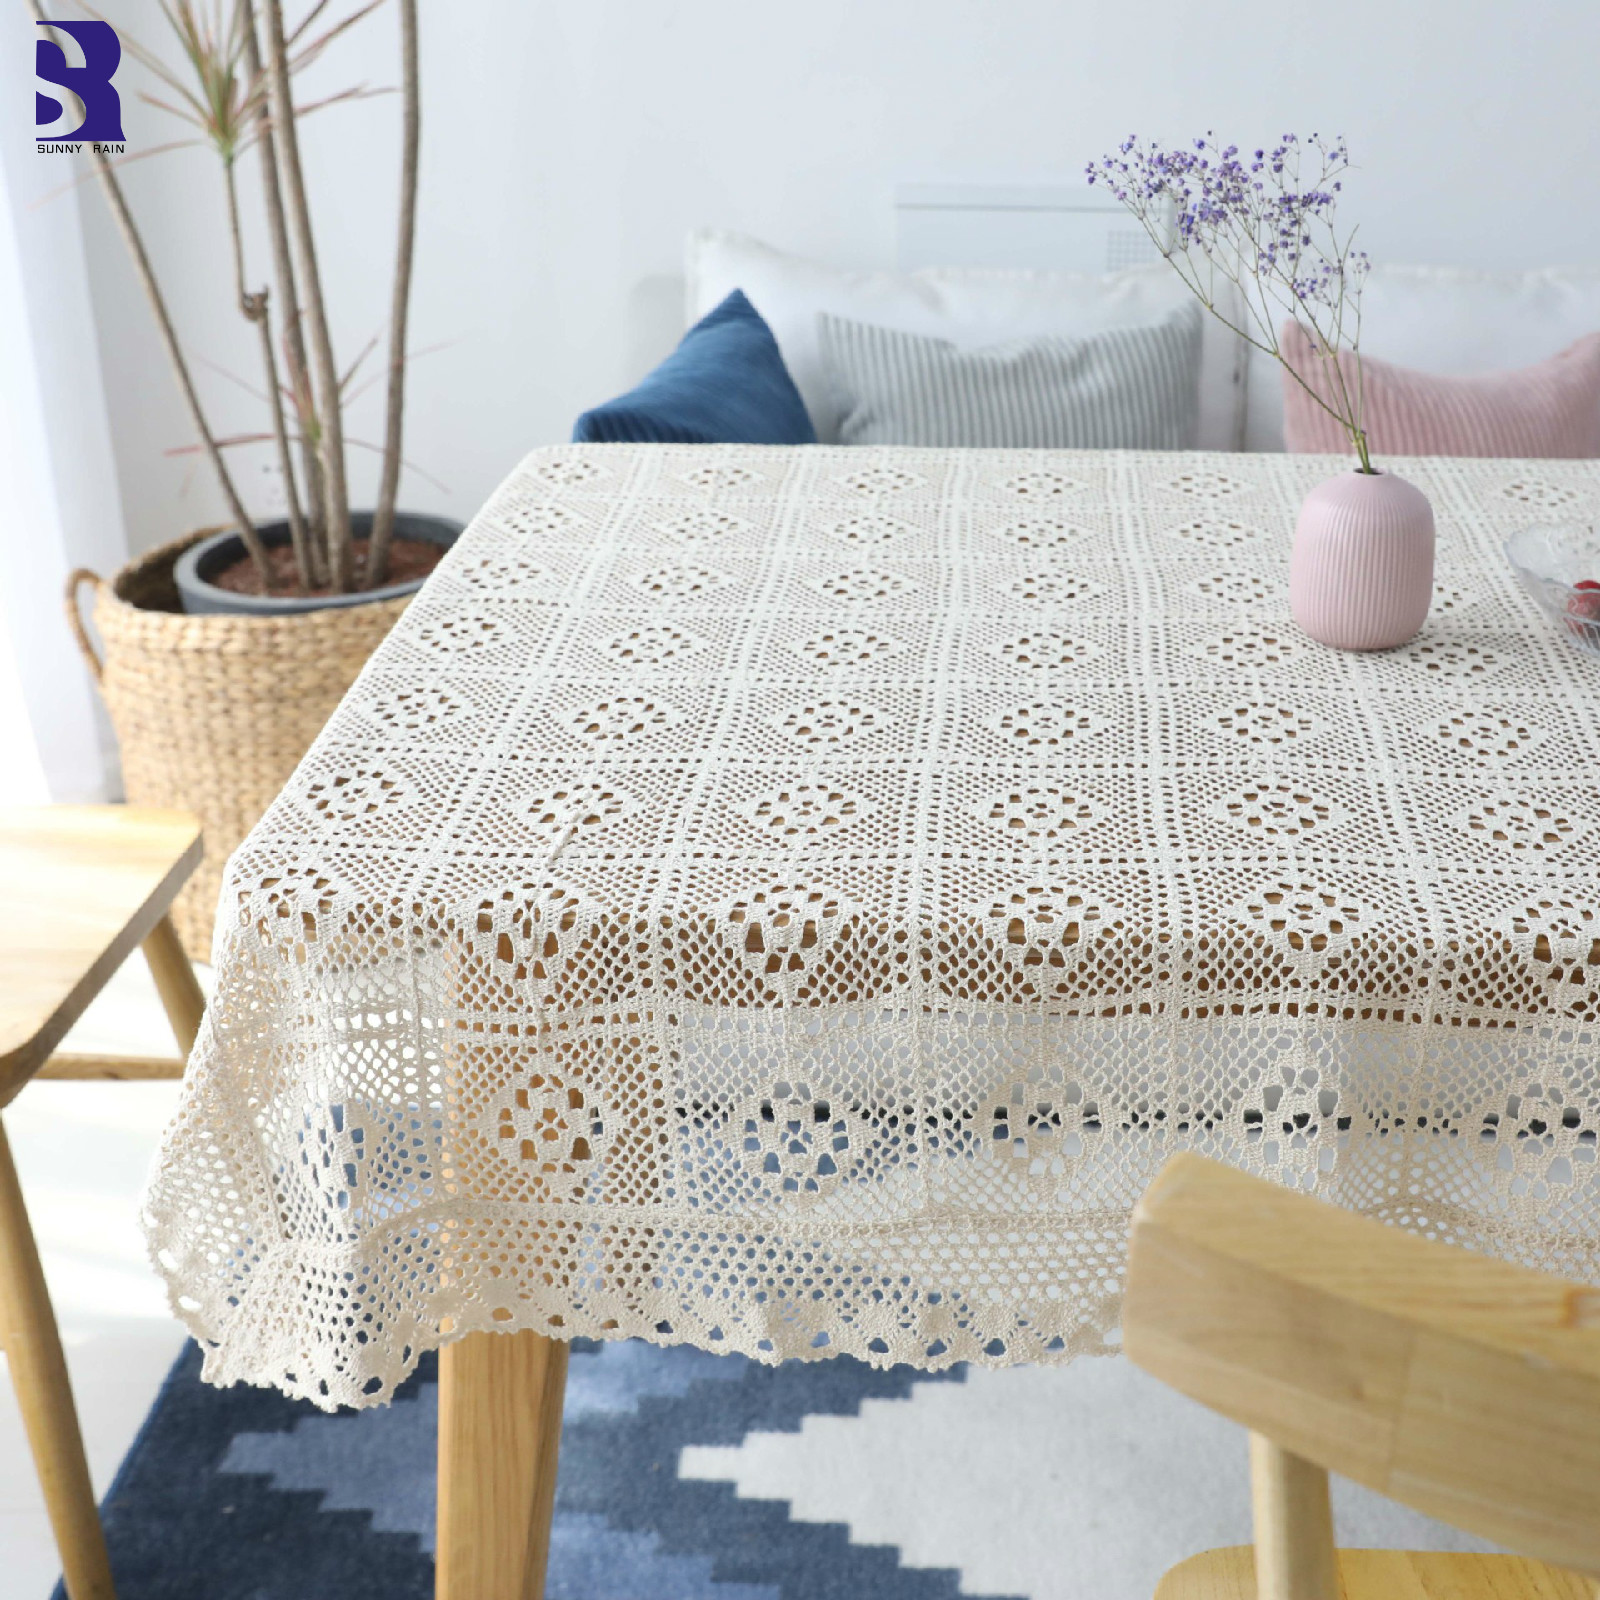 crochet christmas chair covers desk dimensions cm sunnyrain 1 piece white tablecloth table cover rectangle coffee cloths crocheted